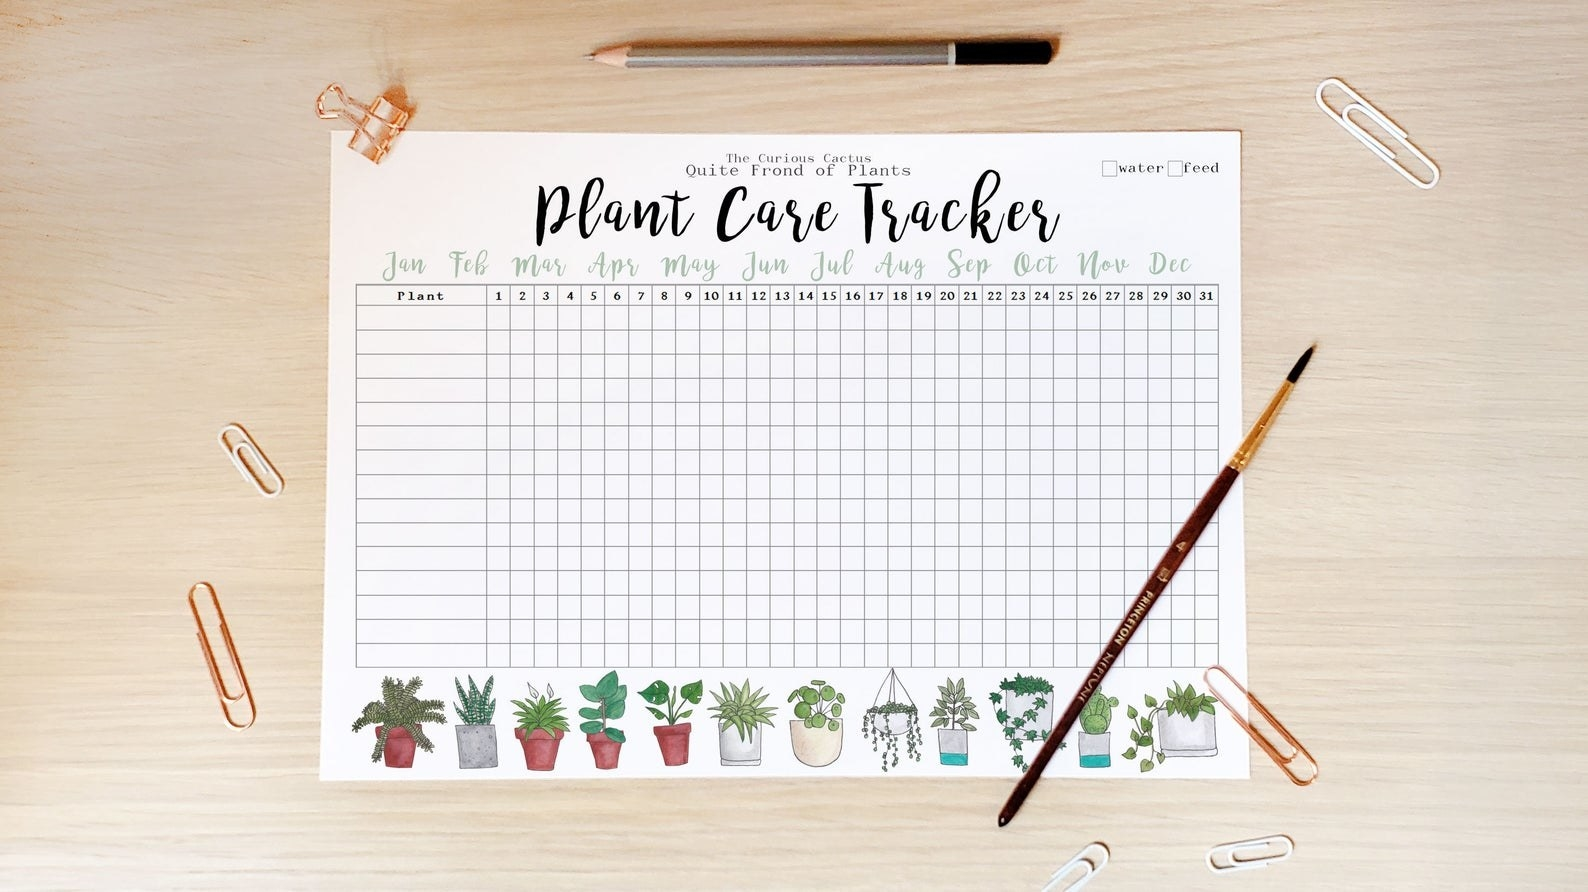 The tracker with spaces for plants and for marking whether you've watered them weekly for a year